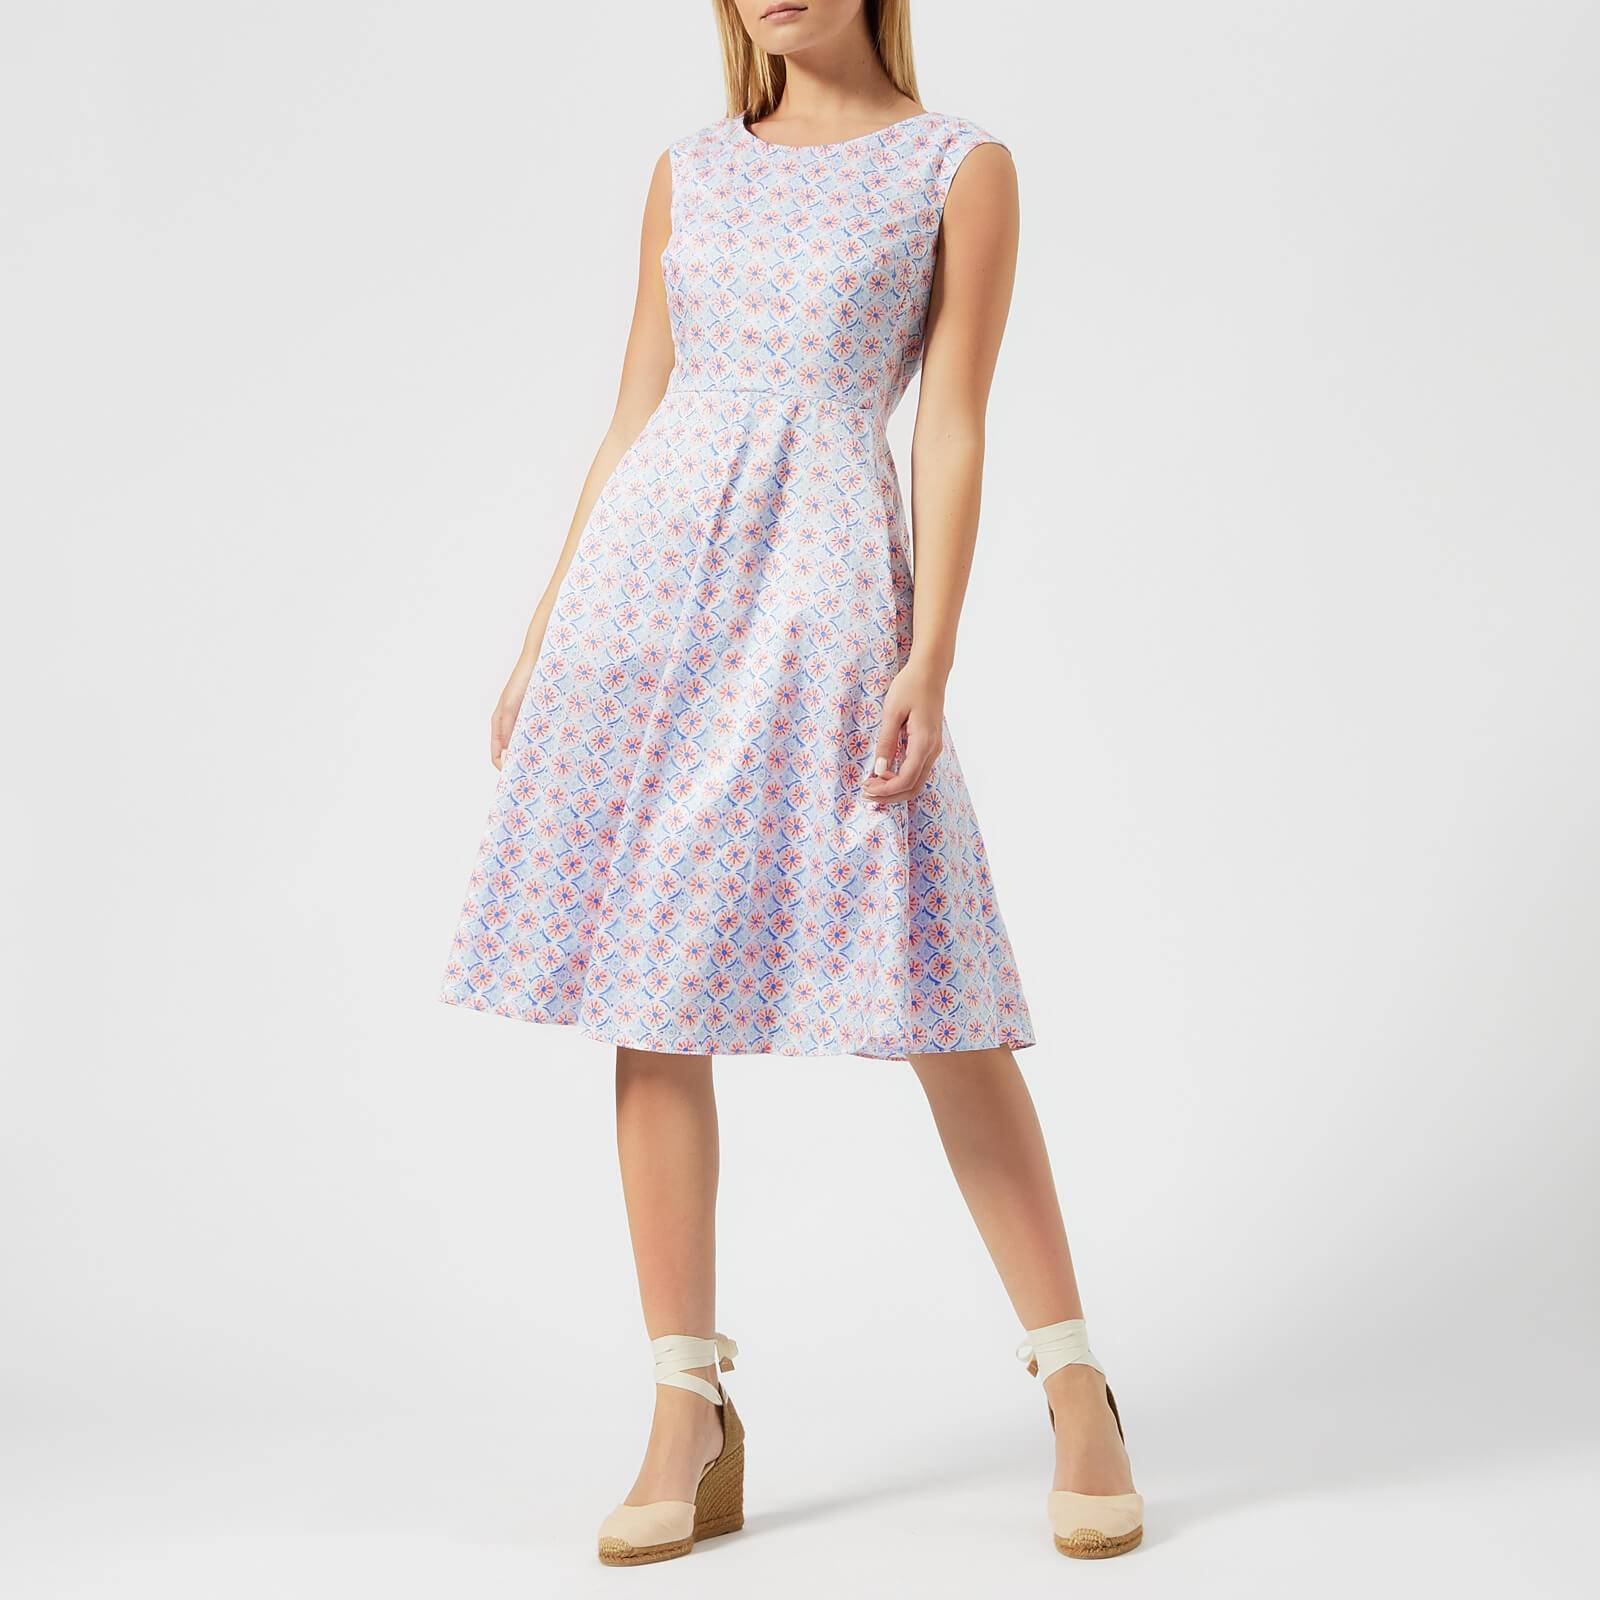 Joules Women's Amelie Fit and Flare Dress - White Summer Mosaic - UK 12 - White